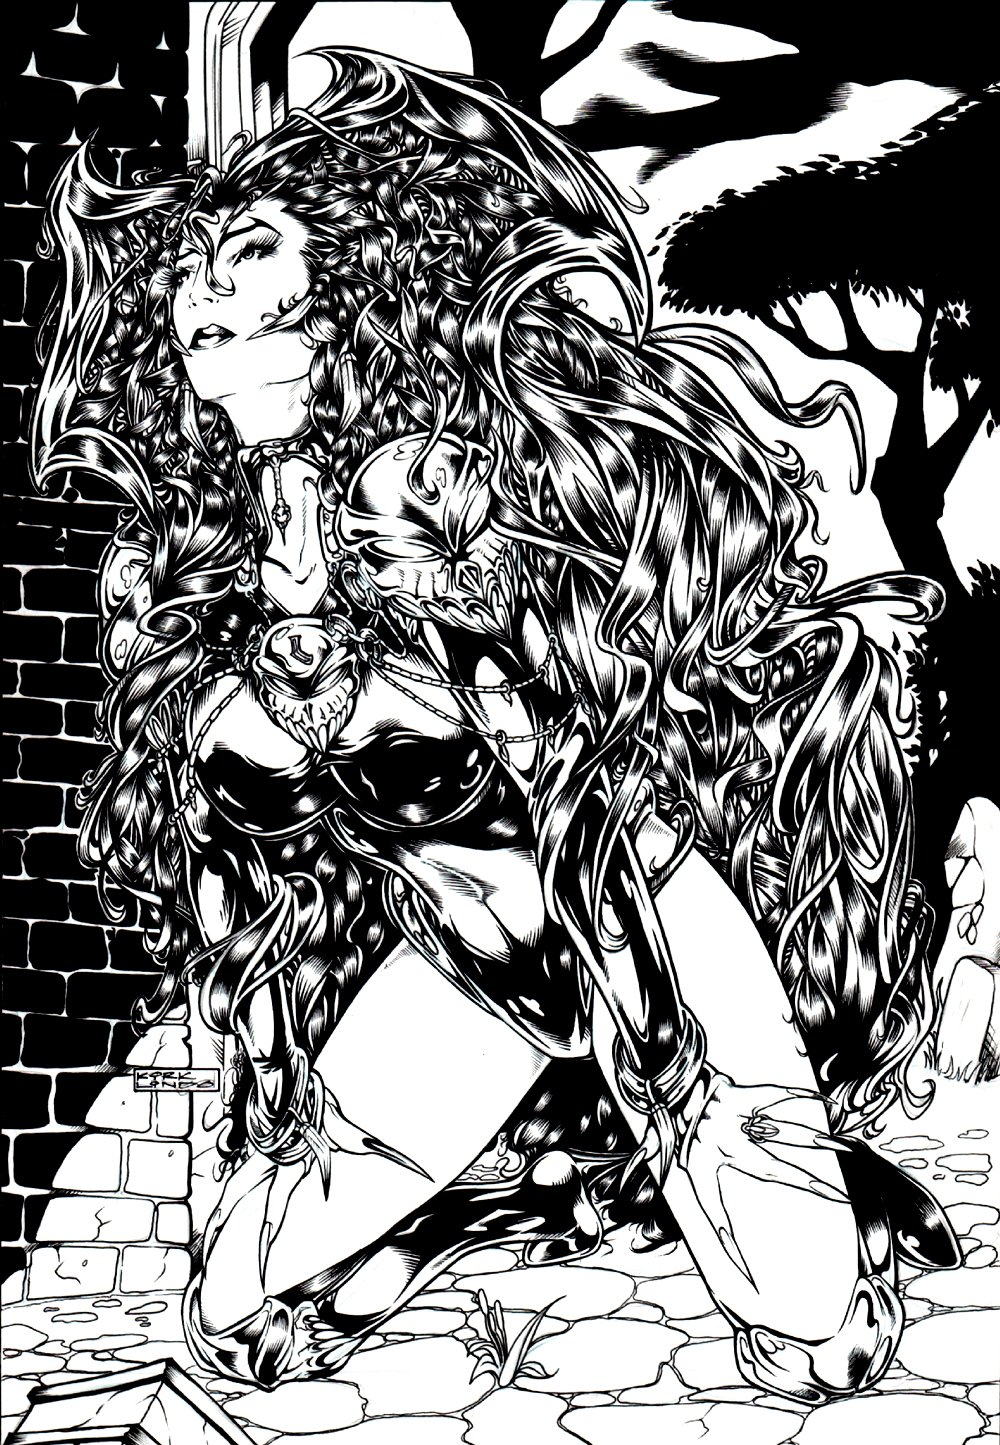 Legends of Luxura #1 Cover (SEXY!) 1996